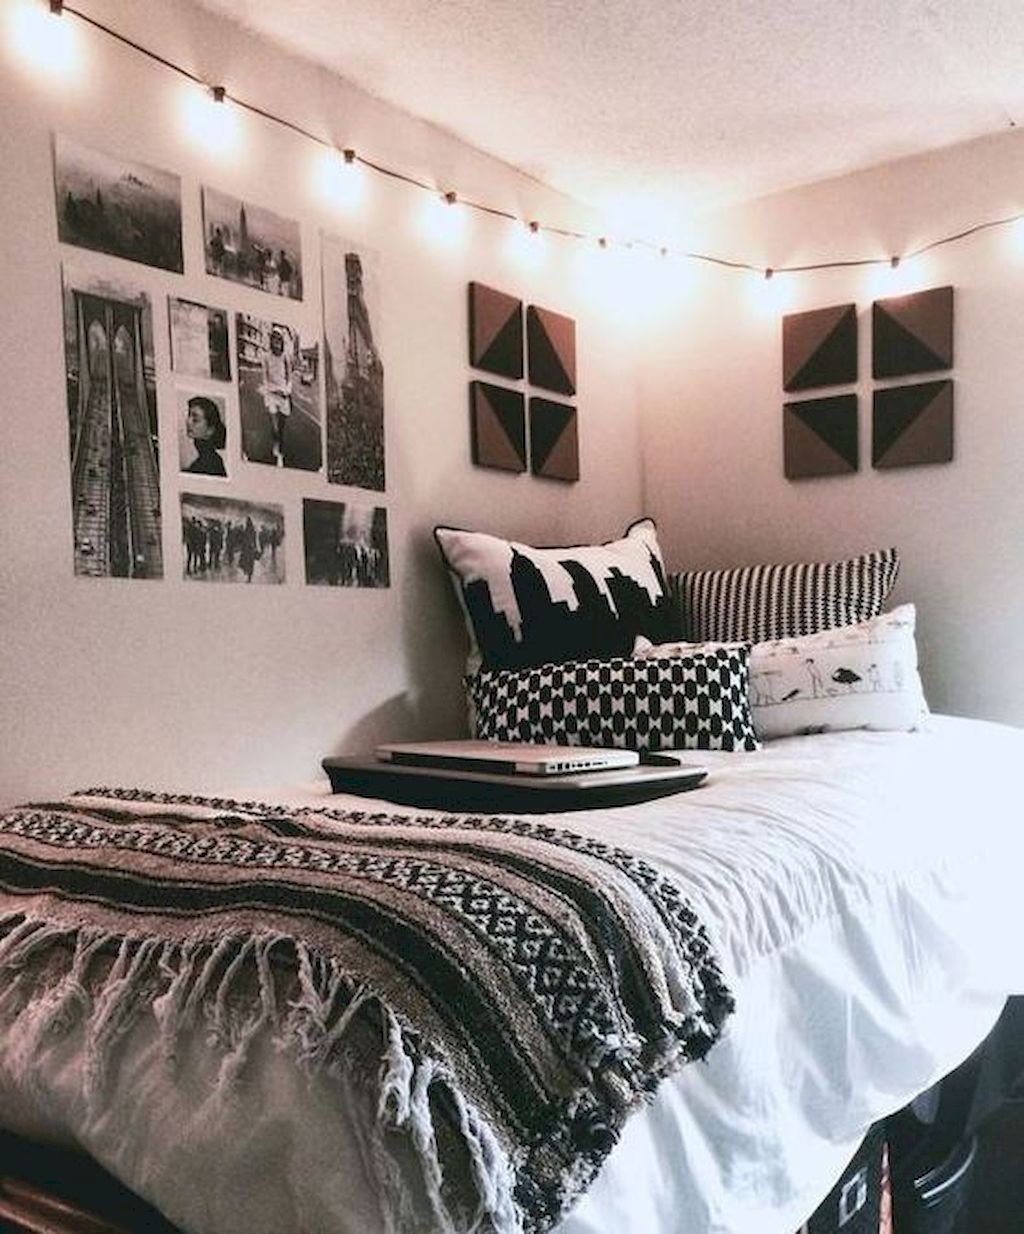 Affordable Cute Dorm Room Decorating Ideas On A Budget 57 Cool Dorm Rooms Dorm Room Decor House Rooms